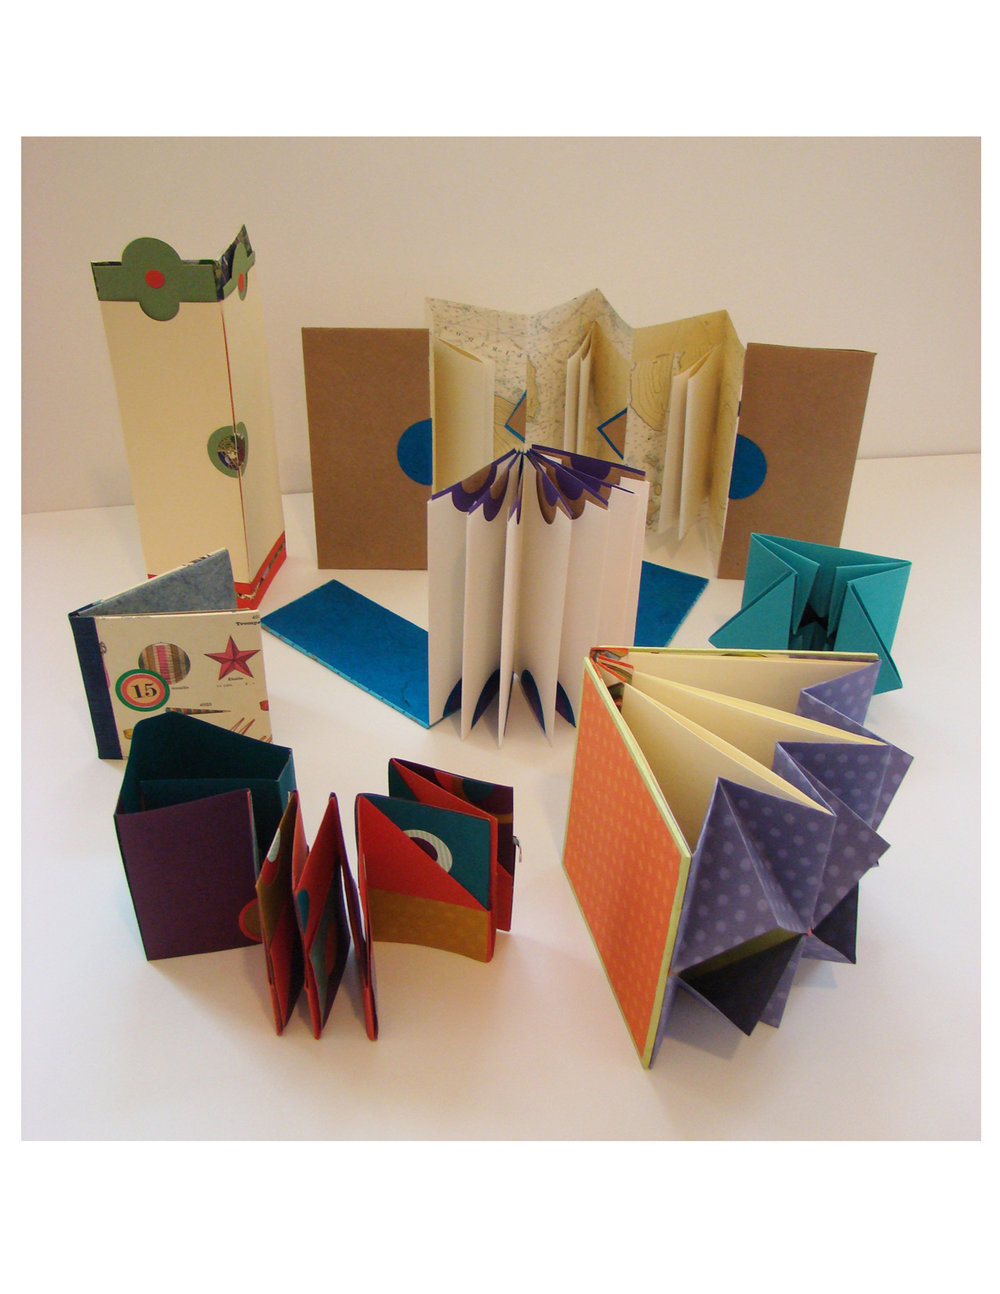 Books That & Expand & Contract  - Book Arts Workshop: September 21-23, 2018. Schweinfurth Memorial Art Center, 205 Genesee Street, Auburn, New York 13021 • 315-255-1553 http://www.schweinfurthartcenter.org/classes_adult.cfm